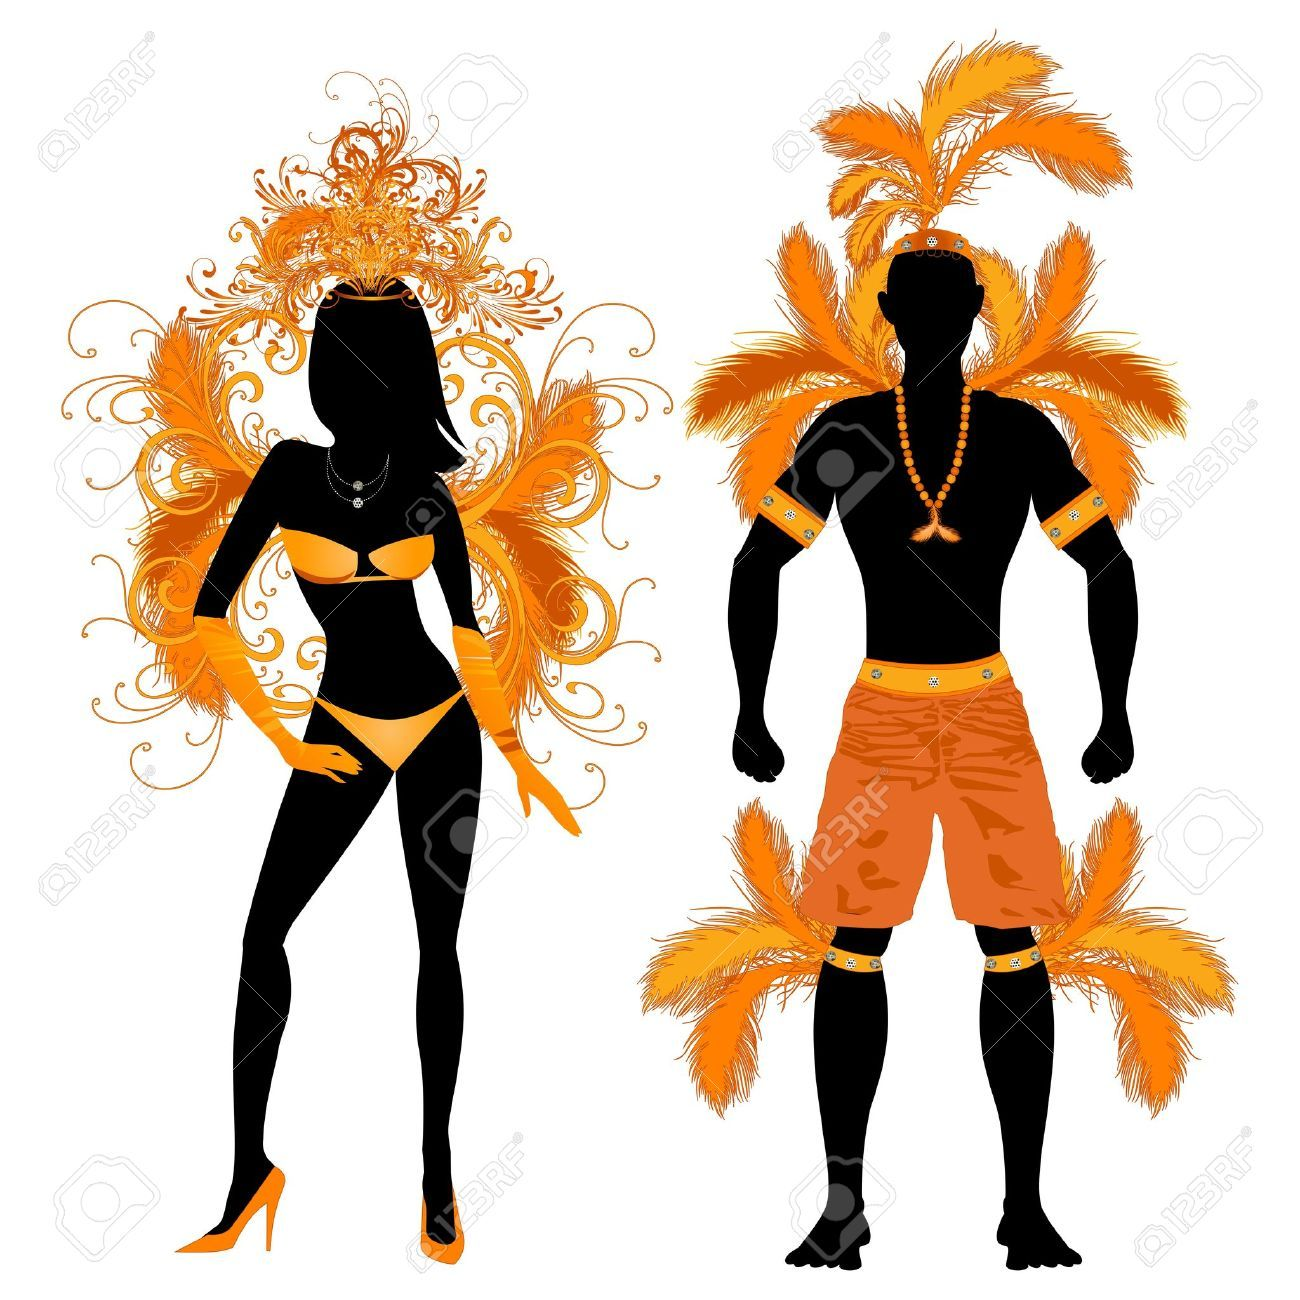 Illustration Of Vector Illustration Orange Couple For Carnival Costume  Silhouettes. Vector Art, Clipart And Stock Vectors.